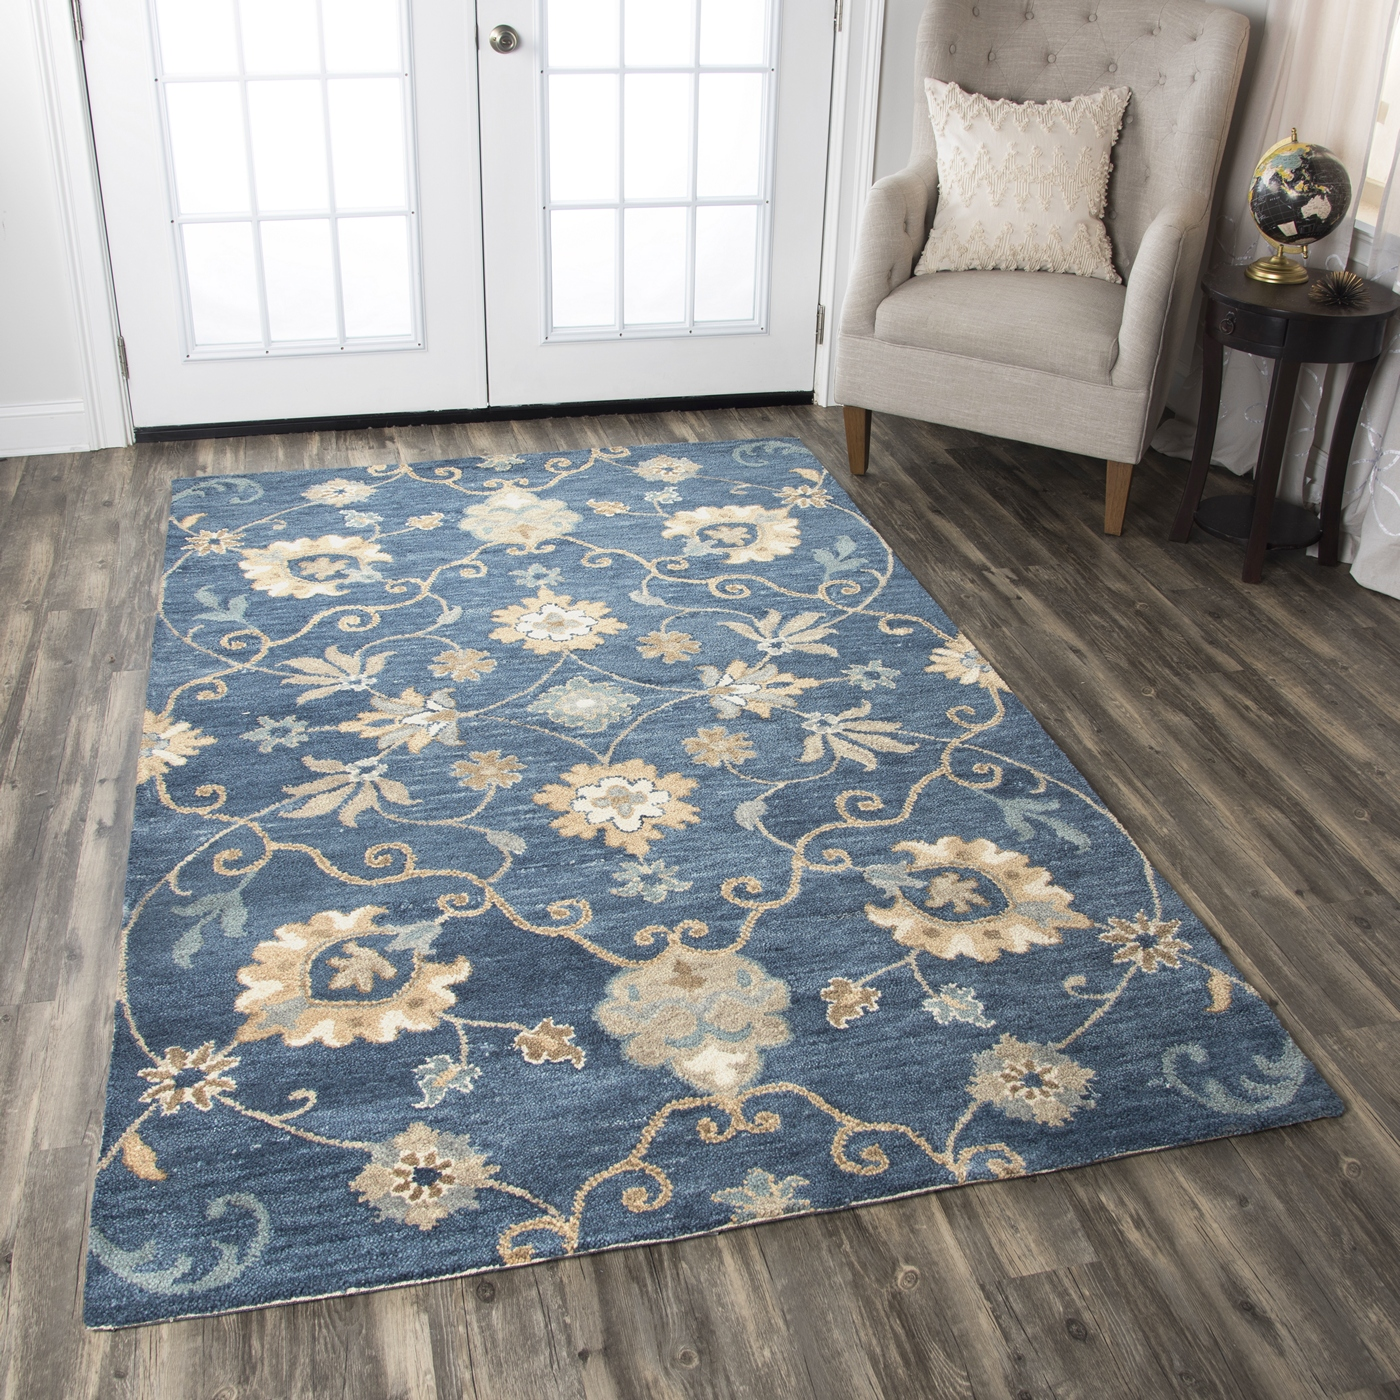 Leone Traditional Motifs Vines Wool Area Rug In Blue